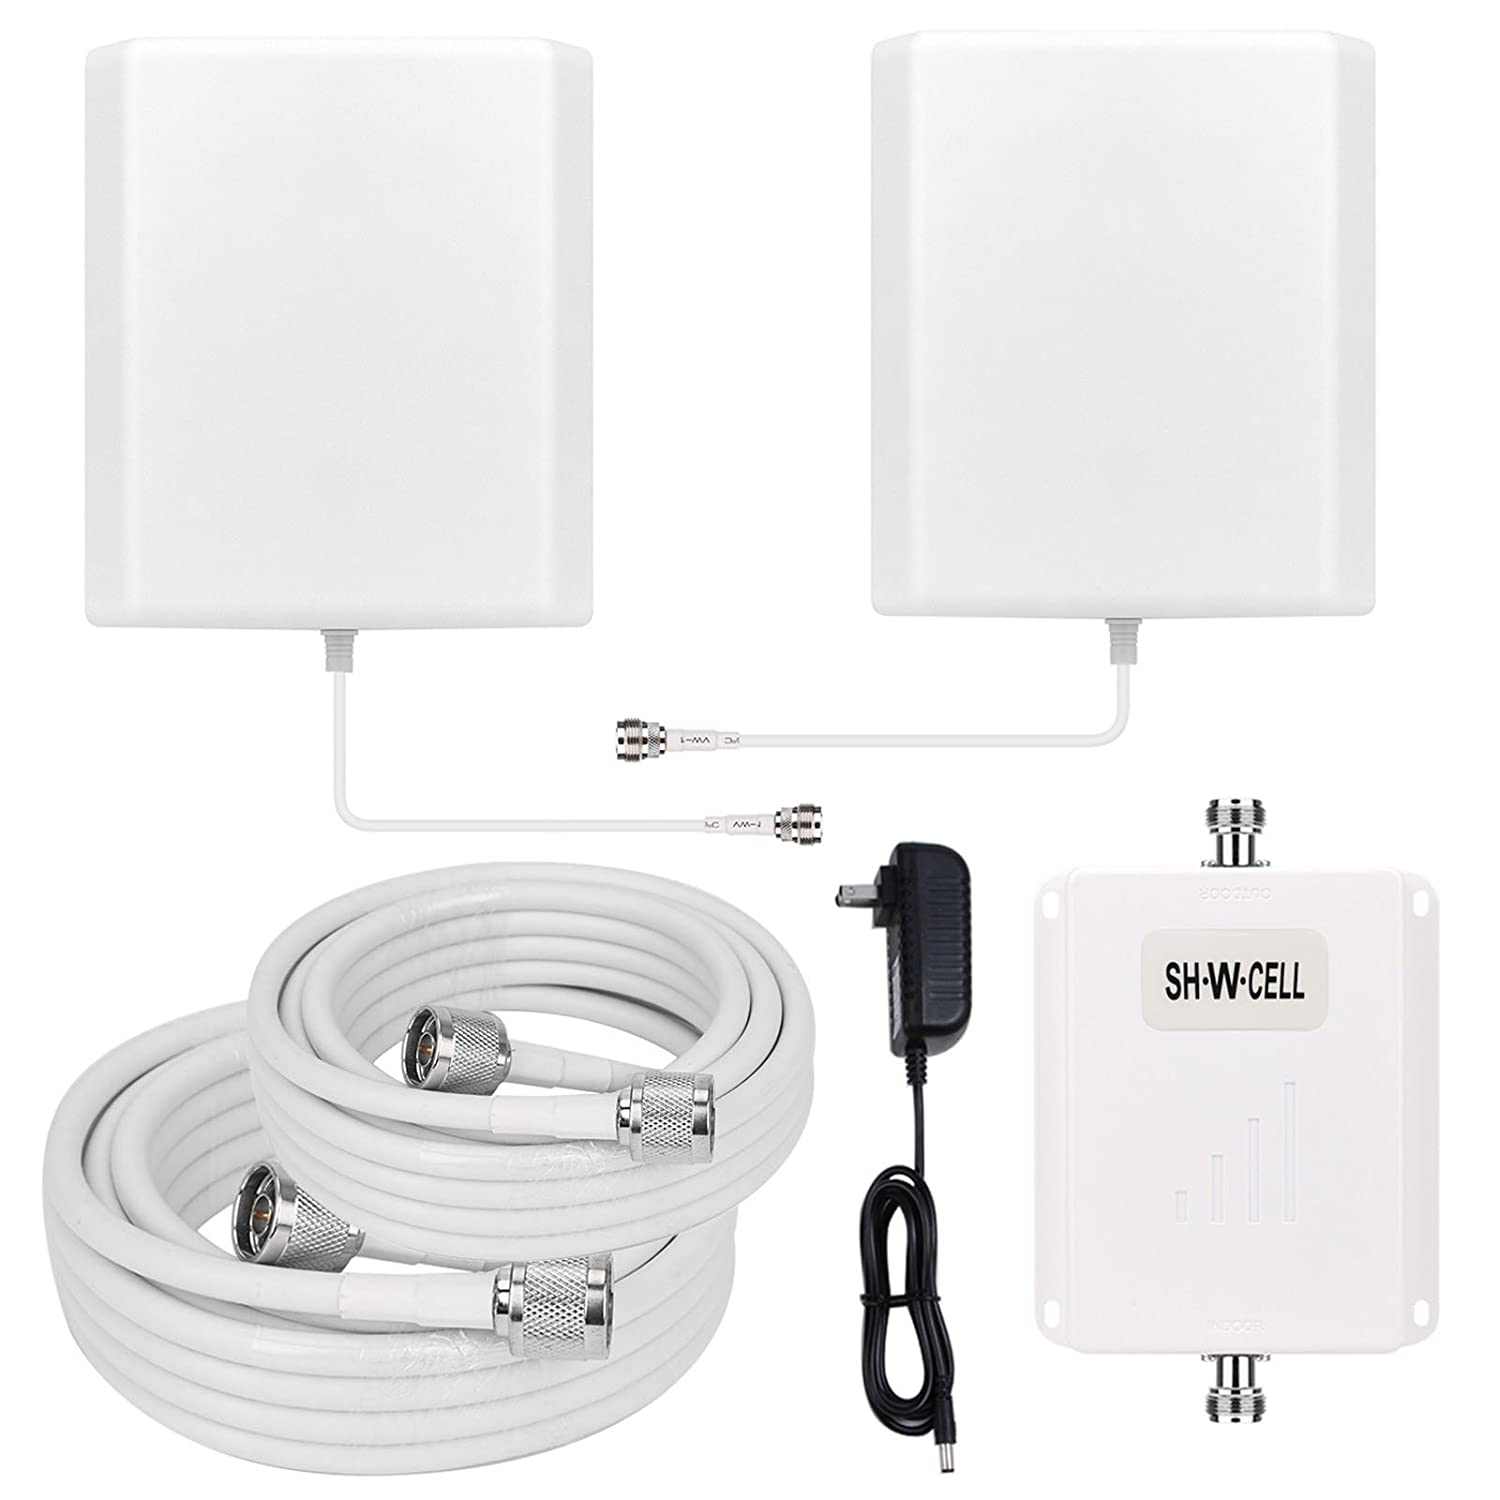 1c8f046b640d56 Verizon Cell Phone Signal Booster 4G LTE 700Mhz Band13 High Gain 70dB Cell  Signal Booster Verizon Mobile Phone Signal Booster Cell Phone Amplifier  Repeater ...